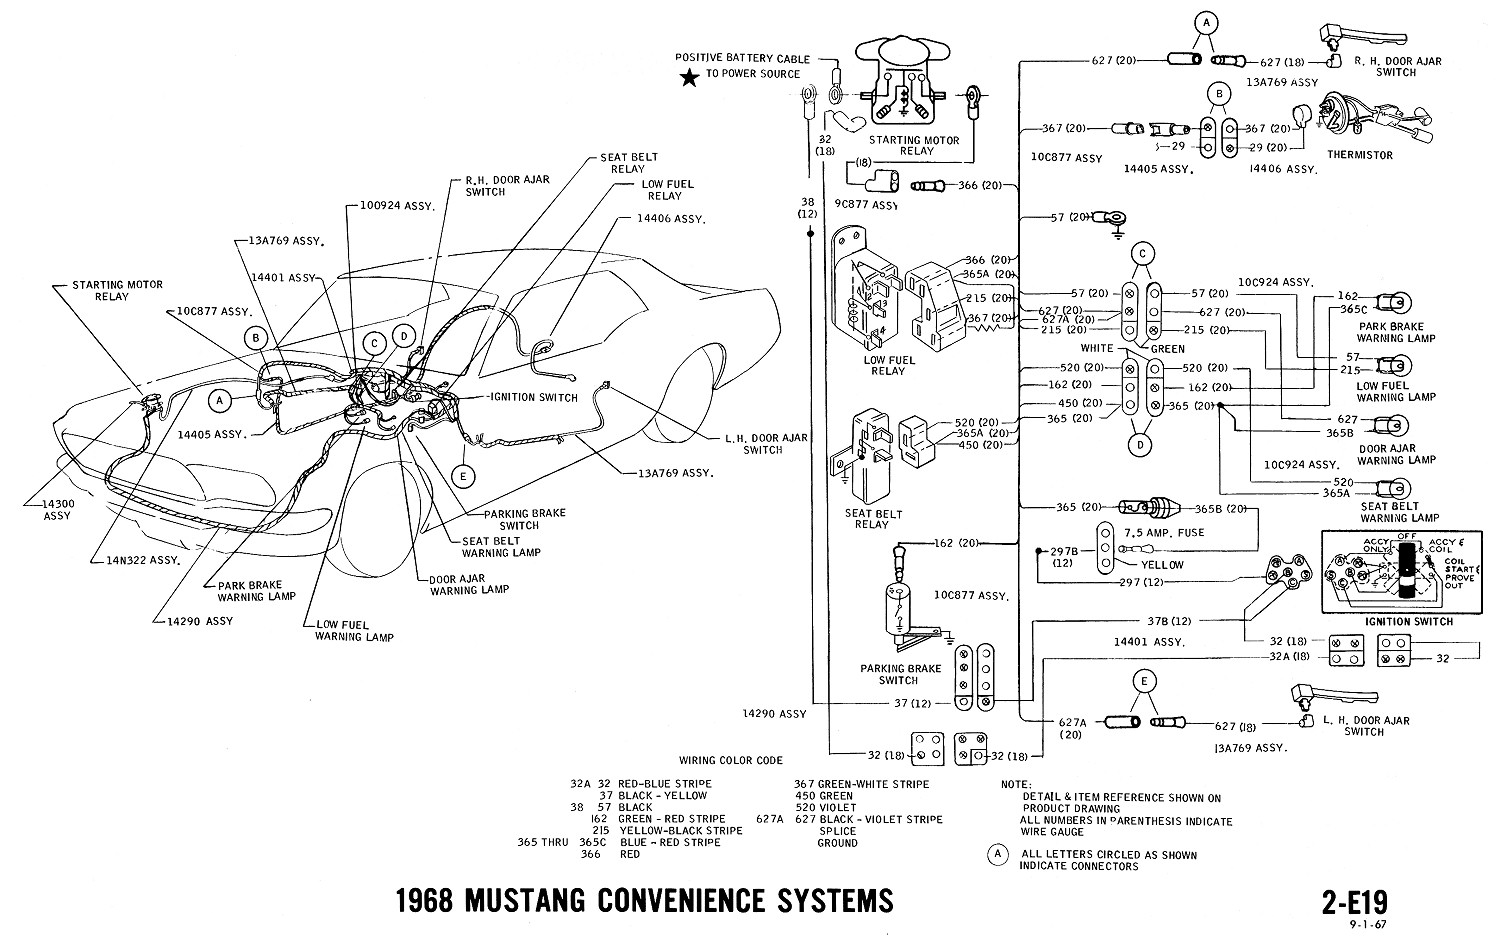 Ford Mustang Wiring Diagrams Manuals Diy Enthusiasts 2001 F150 Diagram Manual Original 1968 And Vacuum Schematics Average Joe Rh Averagejoerestoration Com 1966